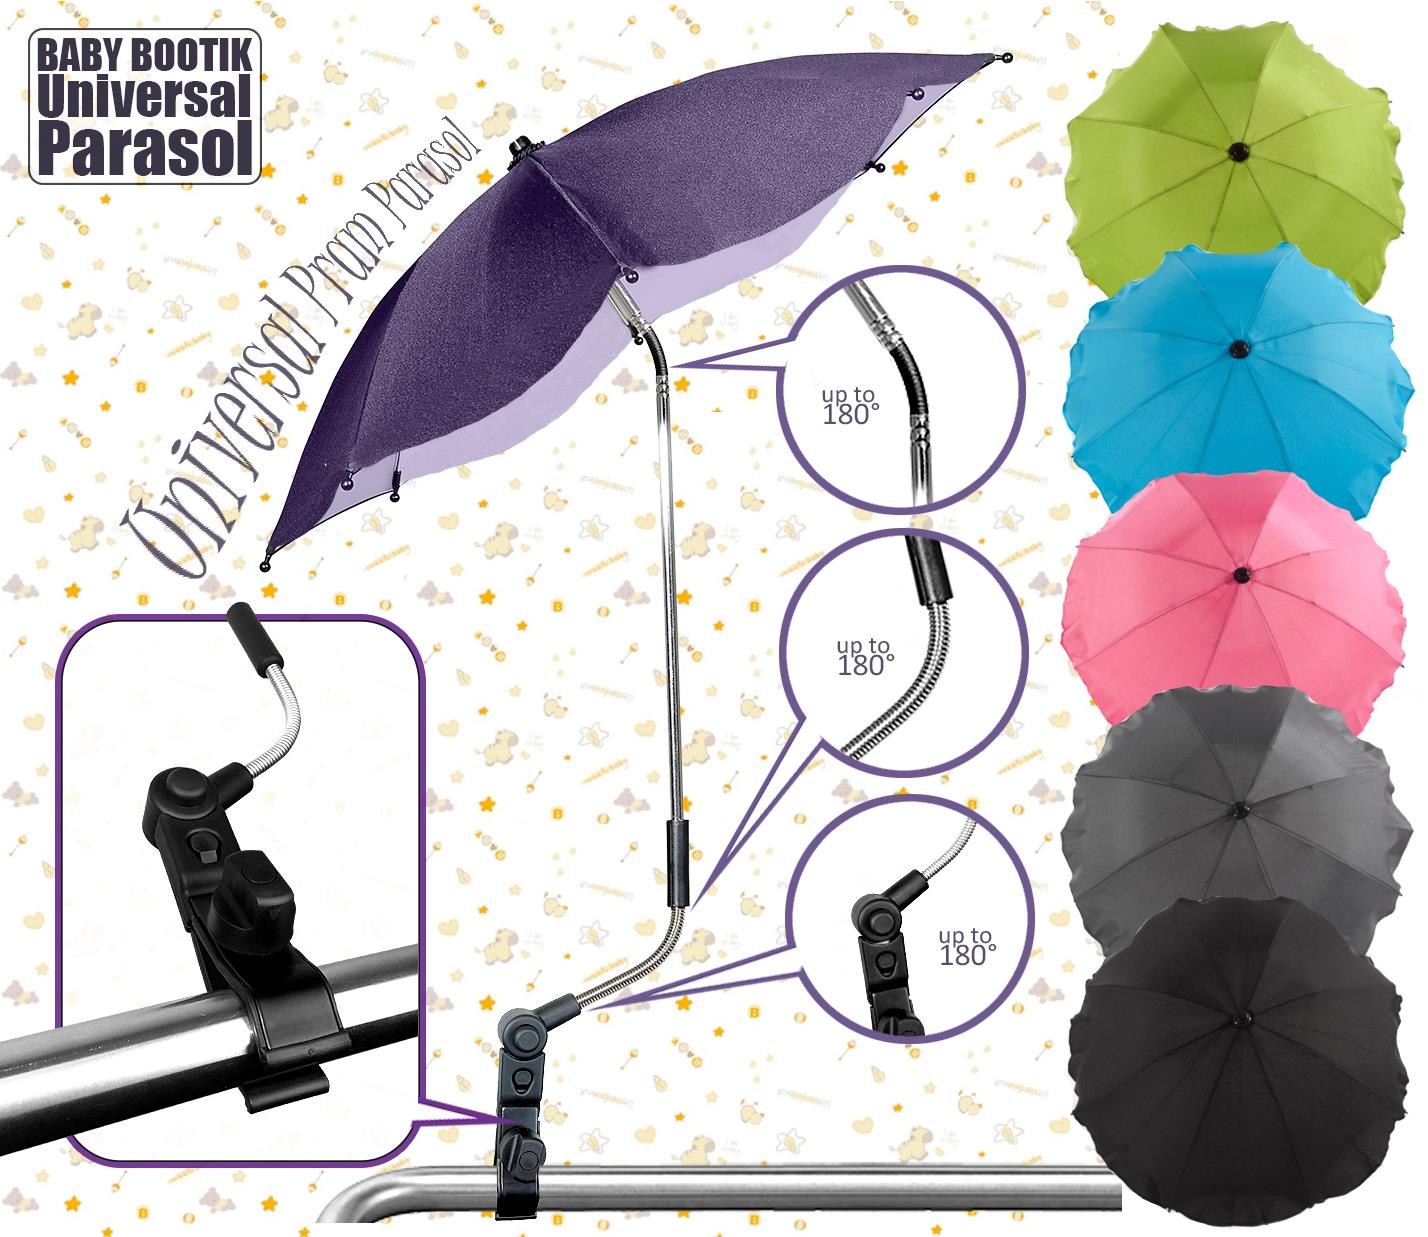 Baby Pram Umbrella Details About Universal Sun Rain Parasol Umbrella Baby Pram Pushchair Canopy At Babybootik